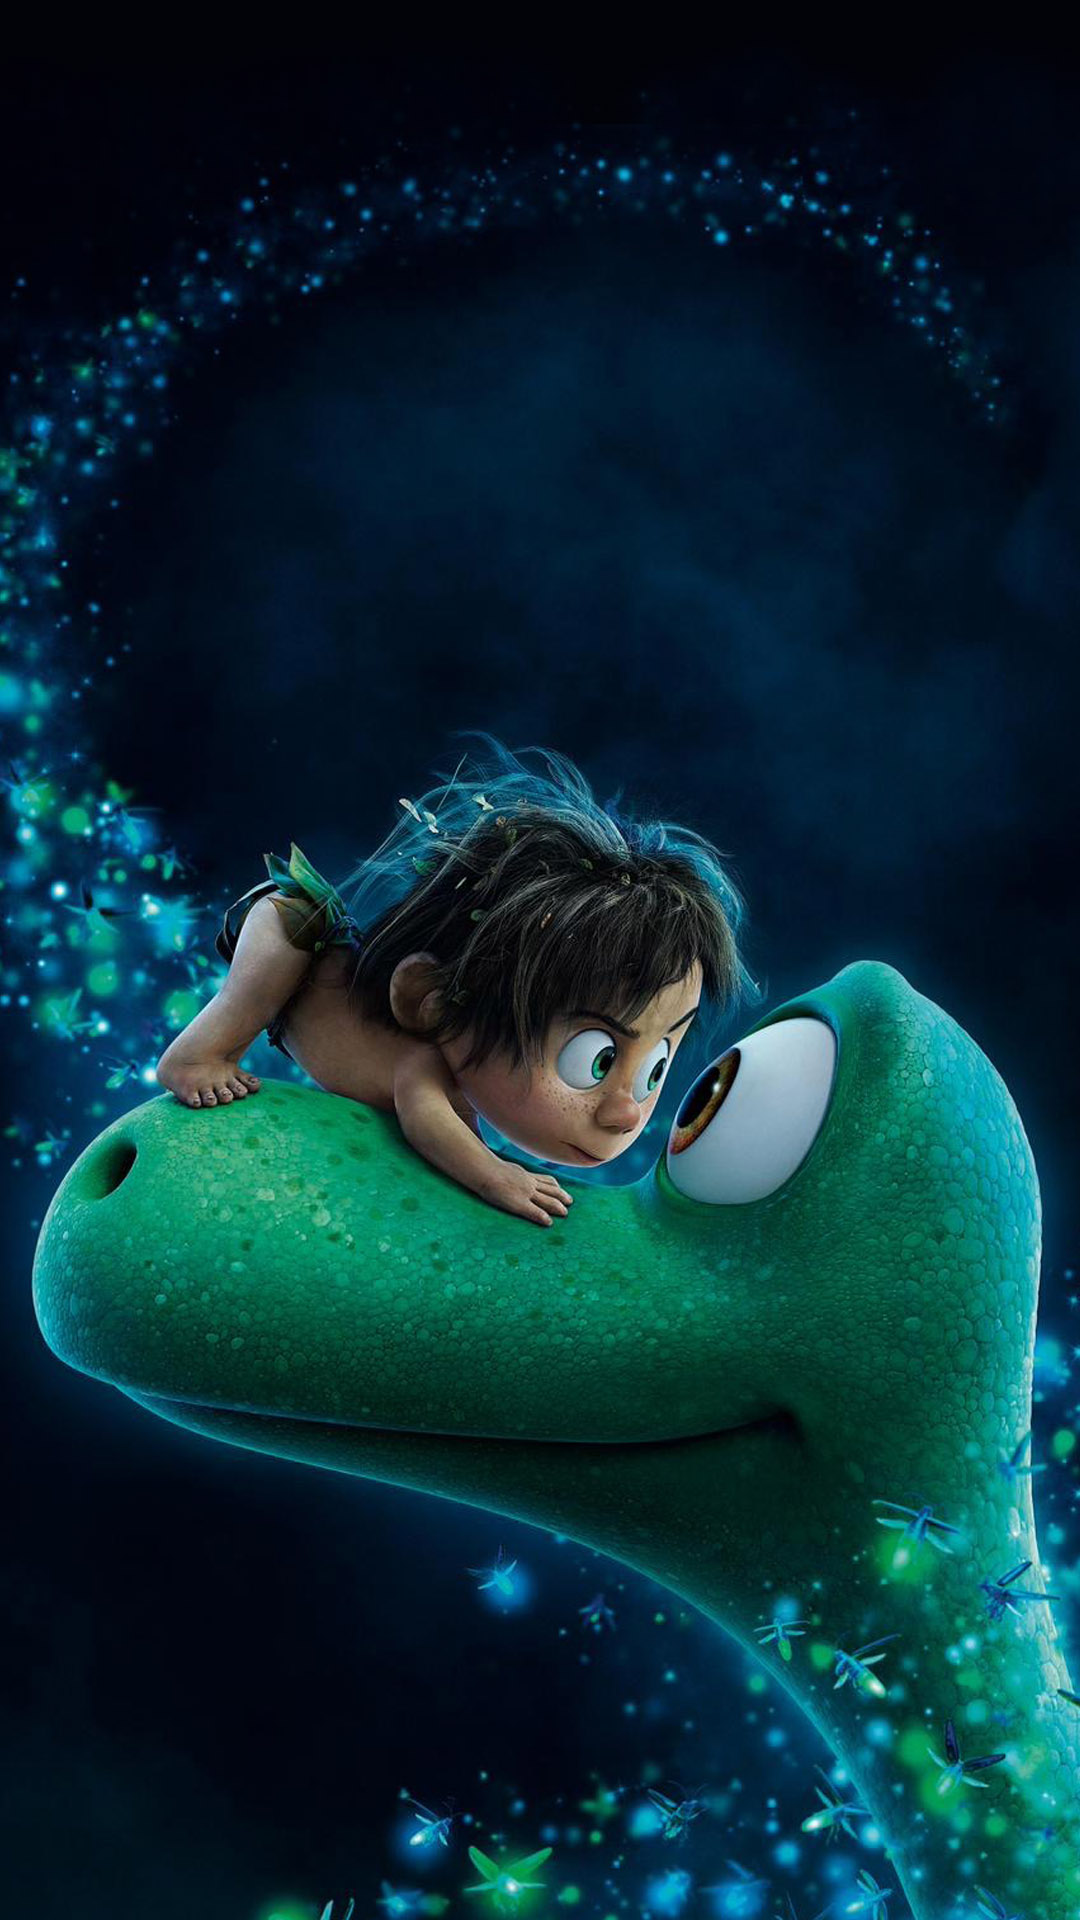 Firefly Iphone Wallpaper Quote The Good Dinosaur Downloadable Wallpaper For Ios